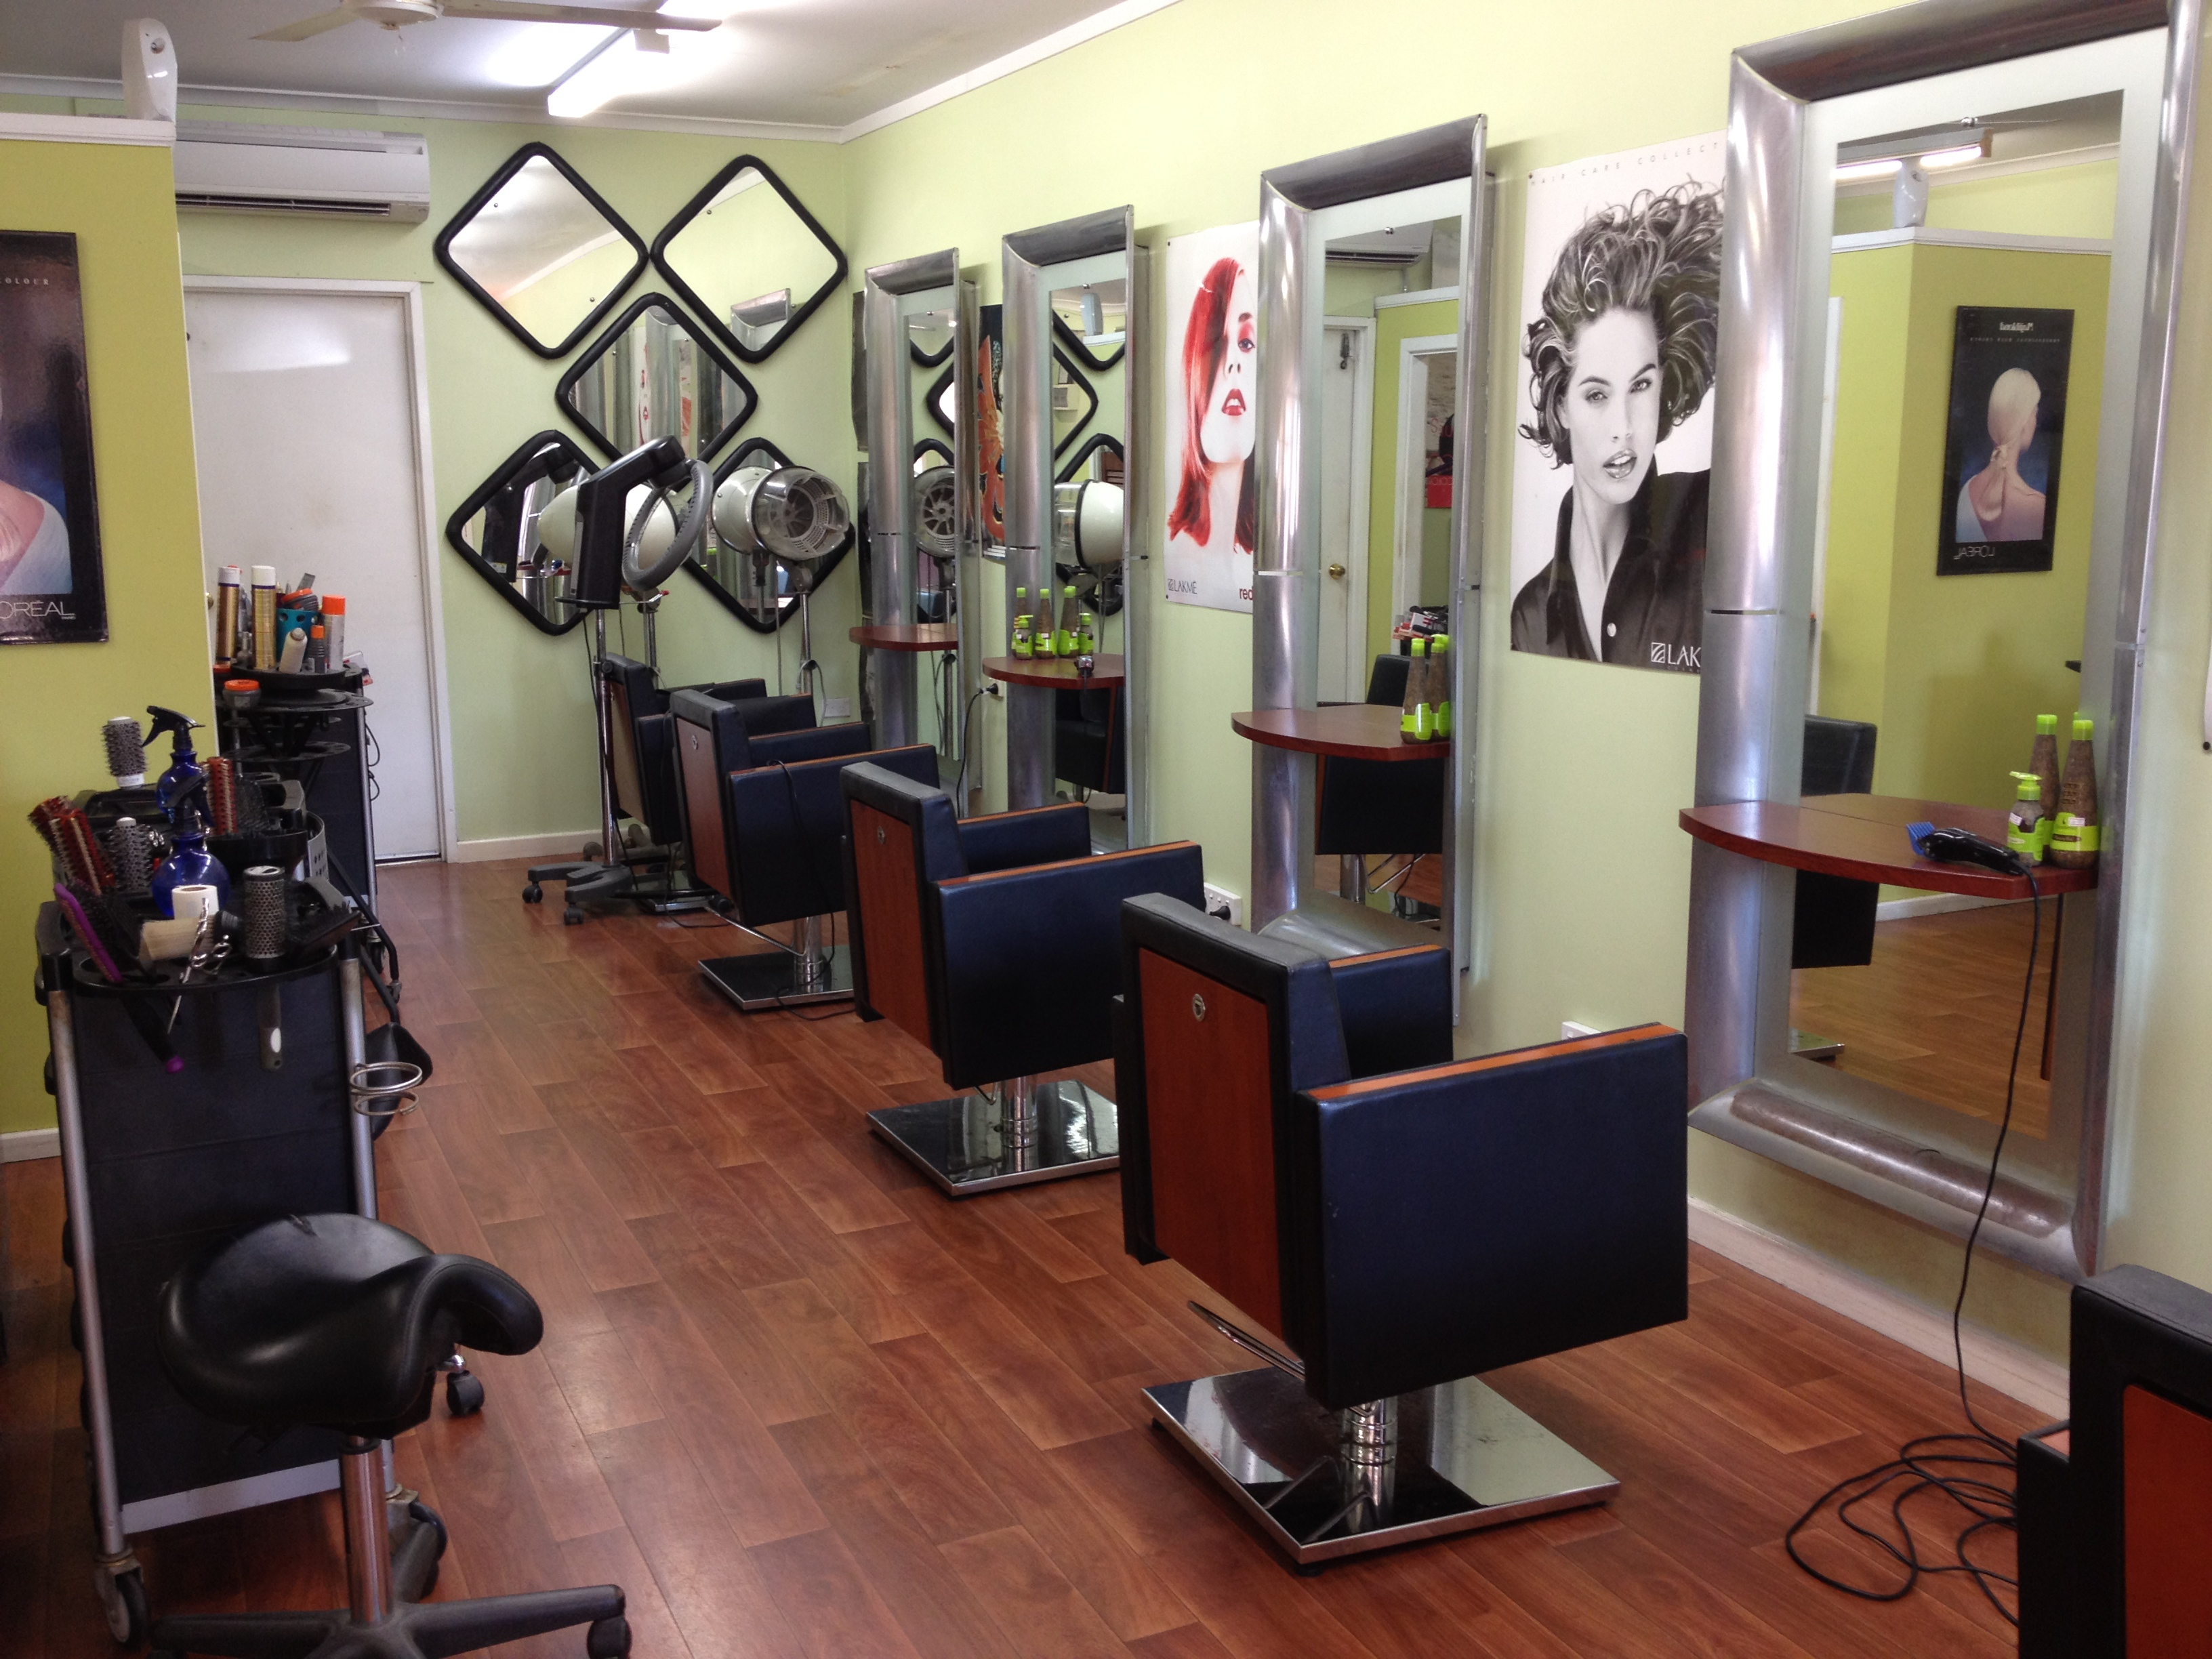 Hair salon broome 08 9192 1432 shaggah 39 s hair studio for About beauty salon